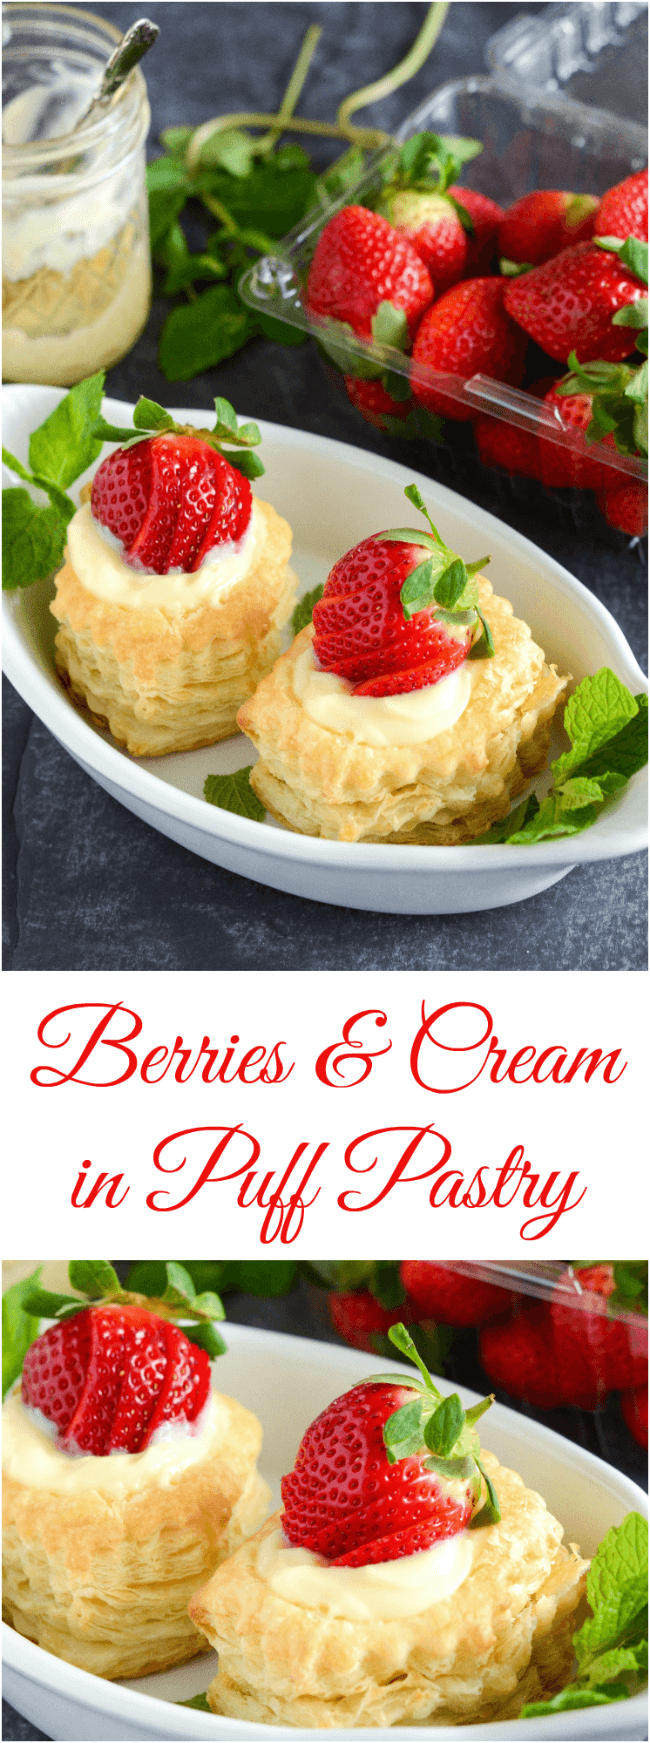 Berries & Cream in Puff Pastry - fresh berries, butter puff pastry and smooth vanilla pastry cream!